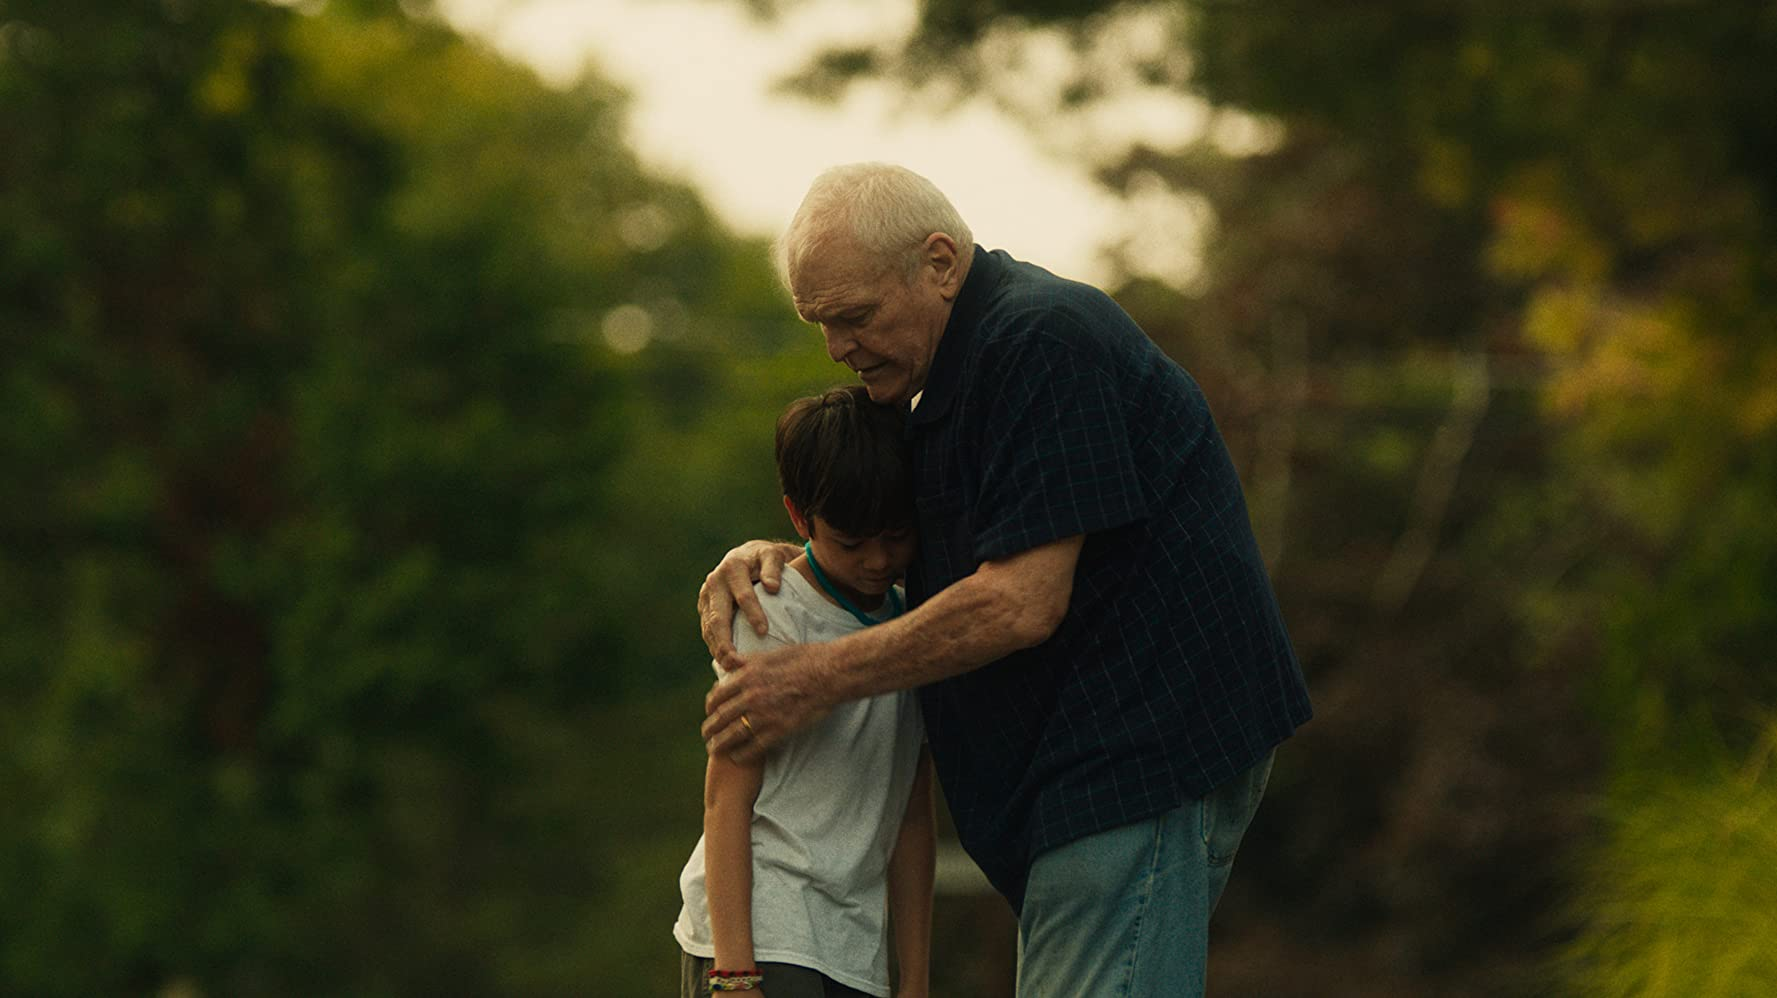 Brian Dennehy and Lucas Jaye in Driveways (2019)